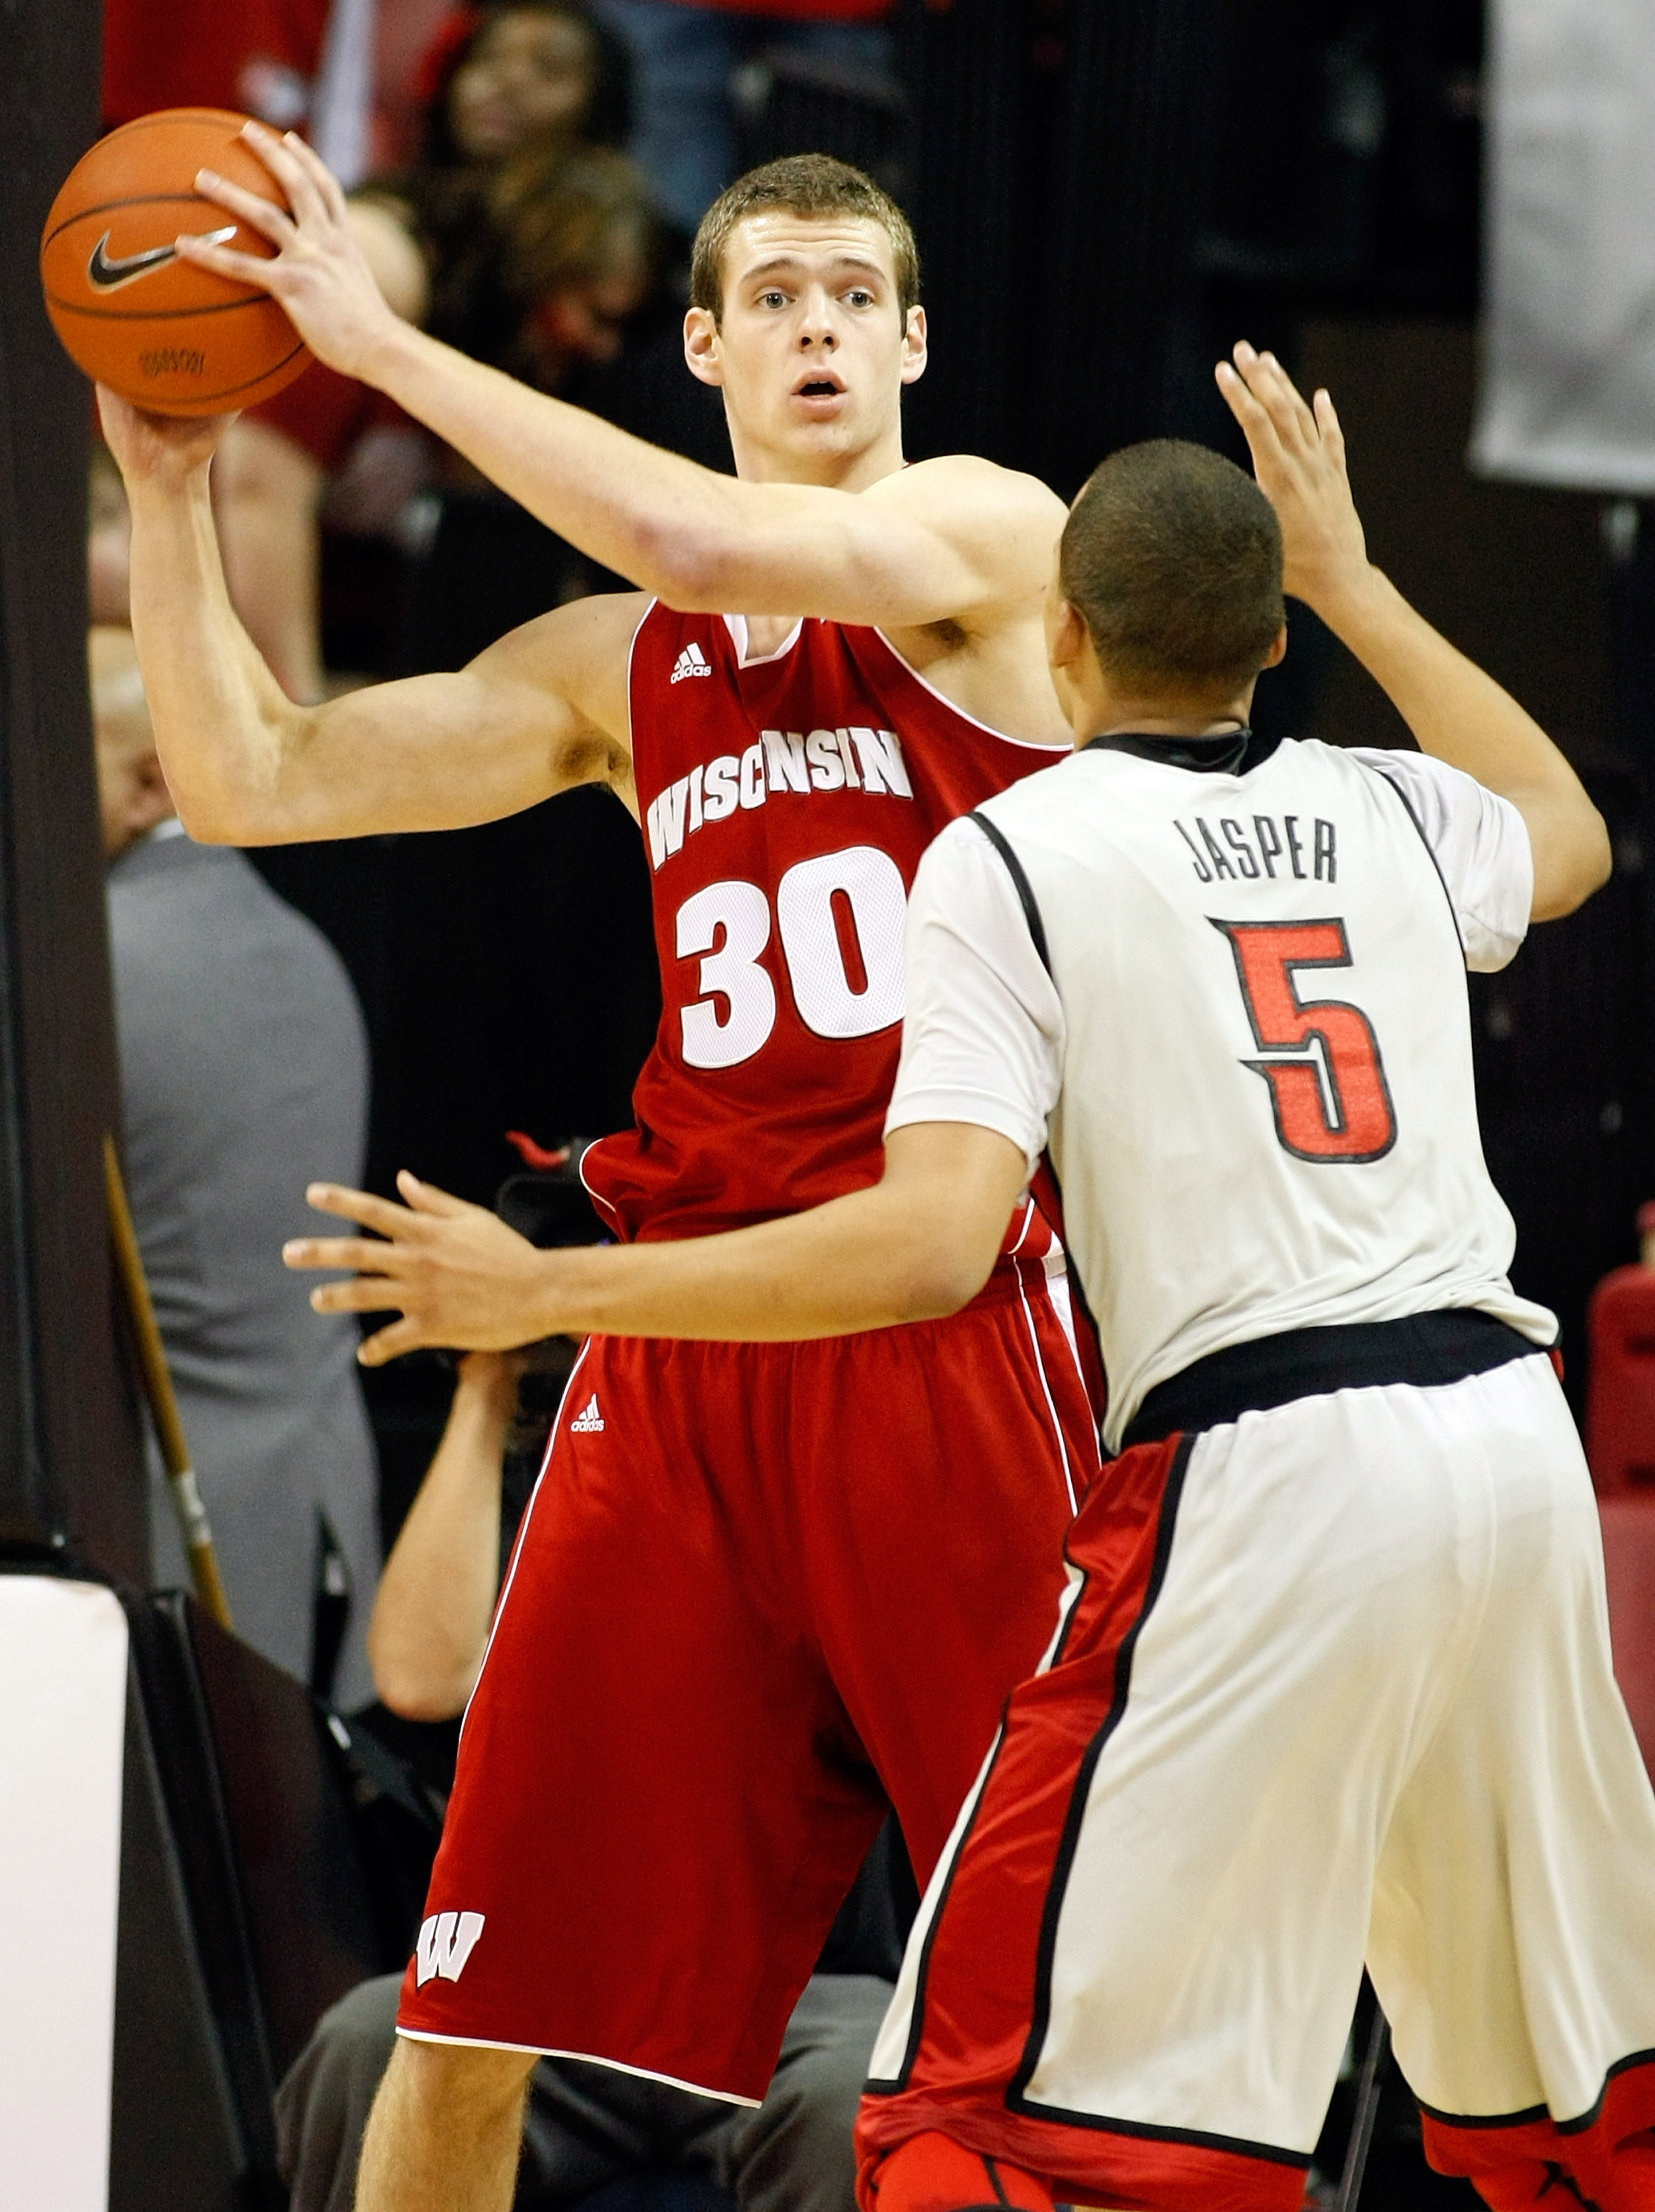 LAS VEGAS - NOVEMBER 20:  Jon Leuer #30 of the Wisconsin Badgers looks to pass the ball inbounds as Derrick Jasper #5 of the UNLV Rebels defends during their game at the Thomas & Mack Center November 20, 2010 in Las Vegas, Nevada. UNLV won 68-65.  (Photo